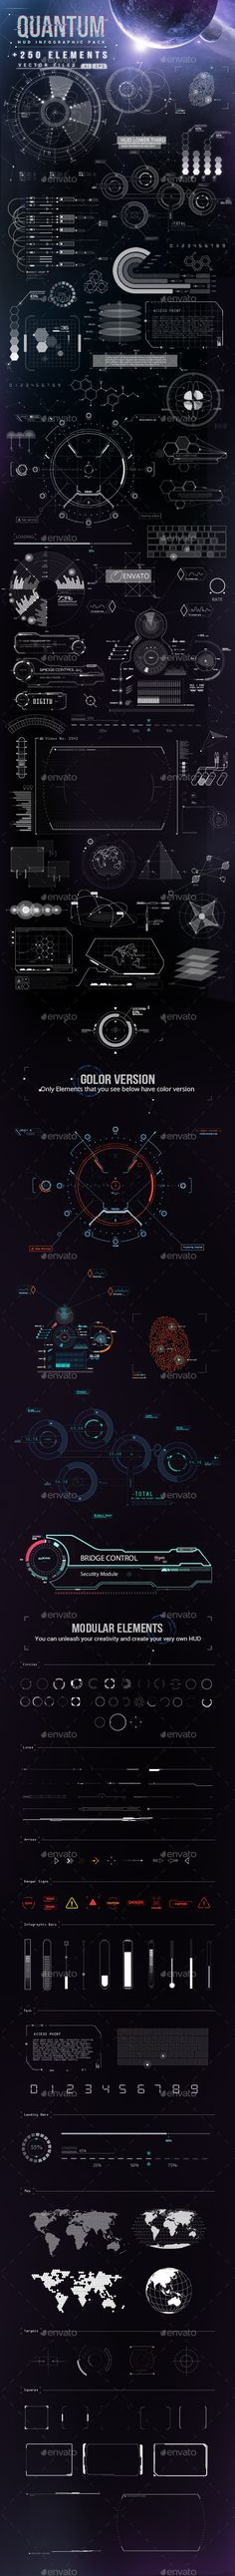 Quantum - HiTech HUD Creator Kit Template #design Download: http://graphicriver.net/item/quantum-hitech-hud-creator-kit/9020363?ref=ksioks